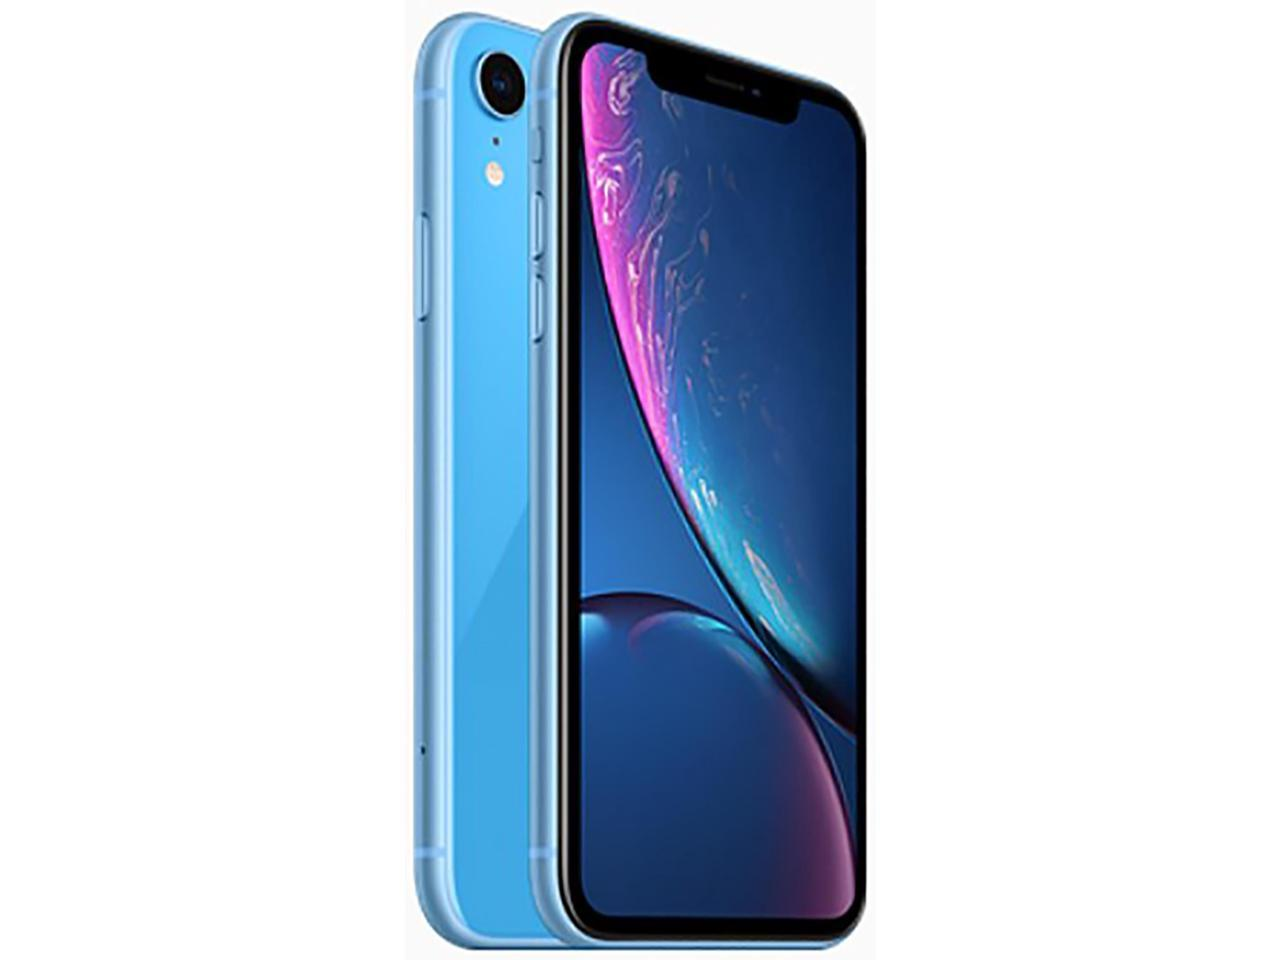 Apple iPhone Xr 64GB Unlocked GSM 4G LTE Phone w/ 12MP Camera - Blue